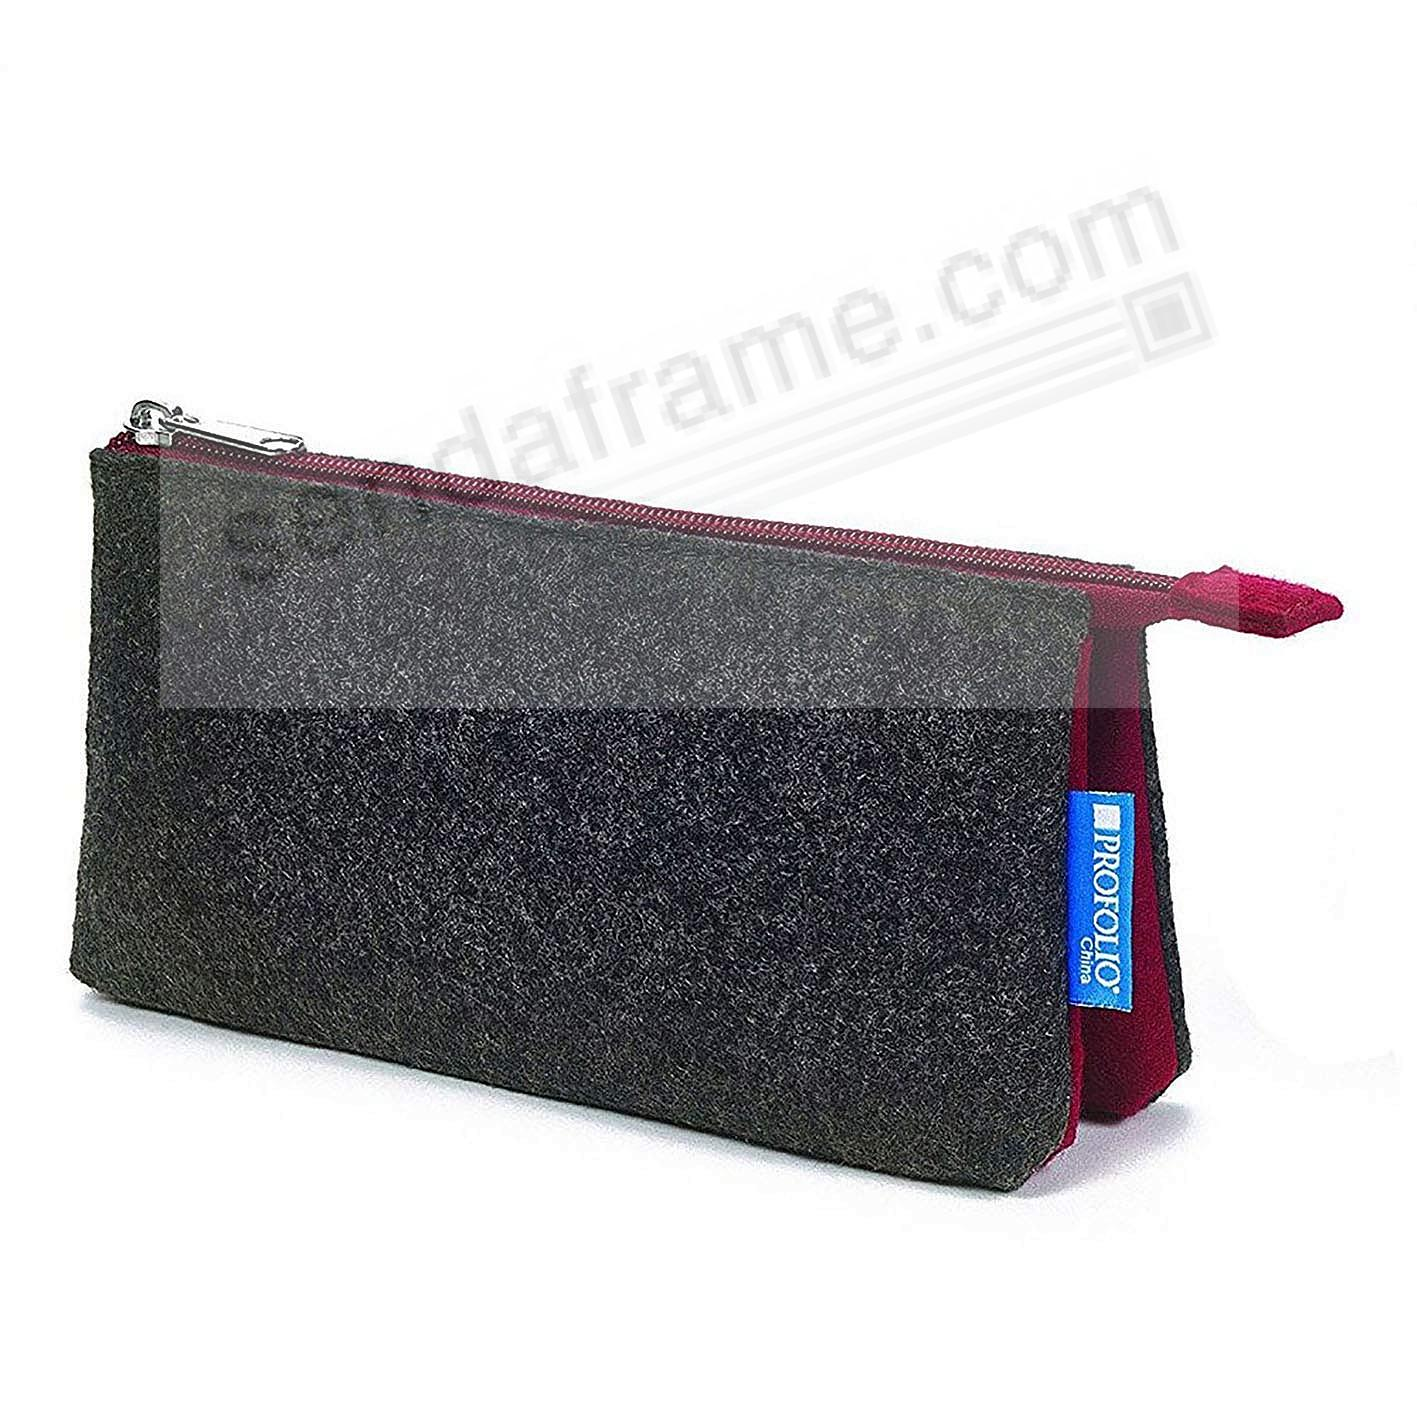 The NEW MIDTOWN POUCH by Itoya - 4x7 CHARCOAL/Maroon